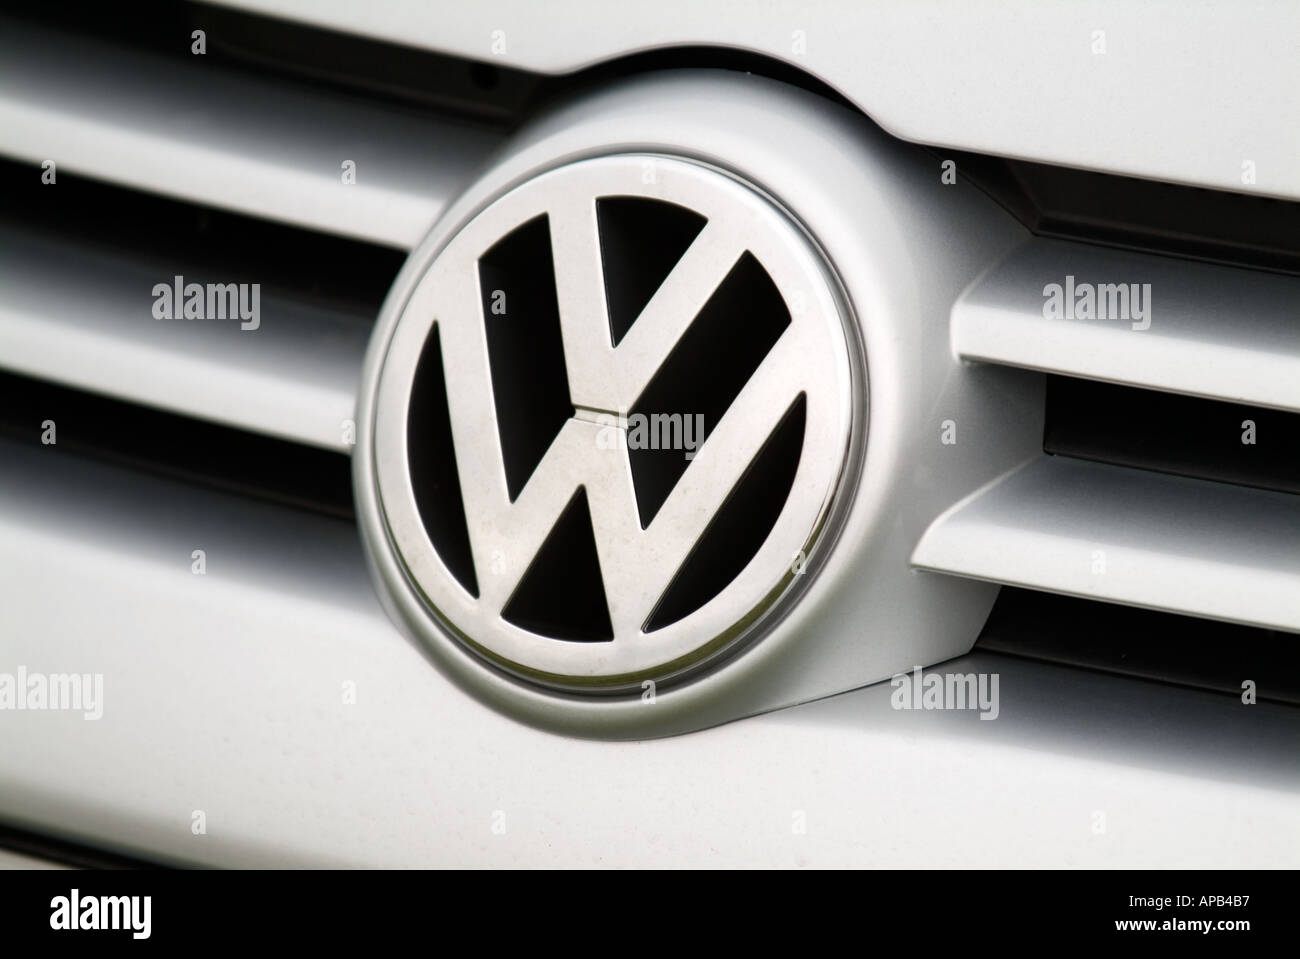 volkswagen car badge vw car german car maker manufacturer audi petrol internal combustion engine Stock Photo